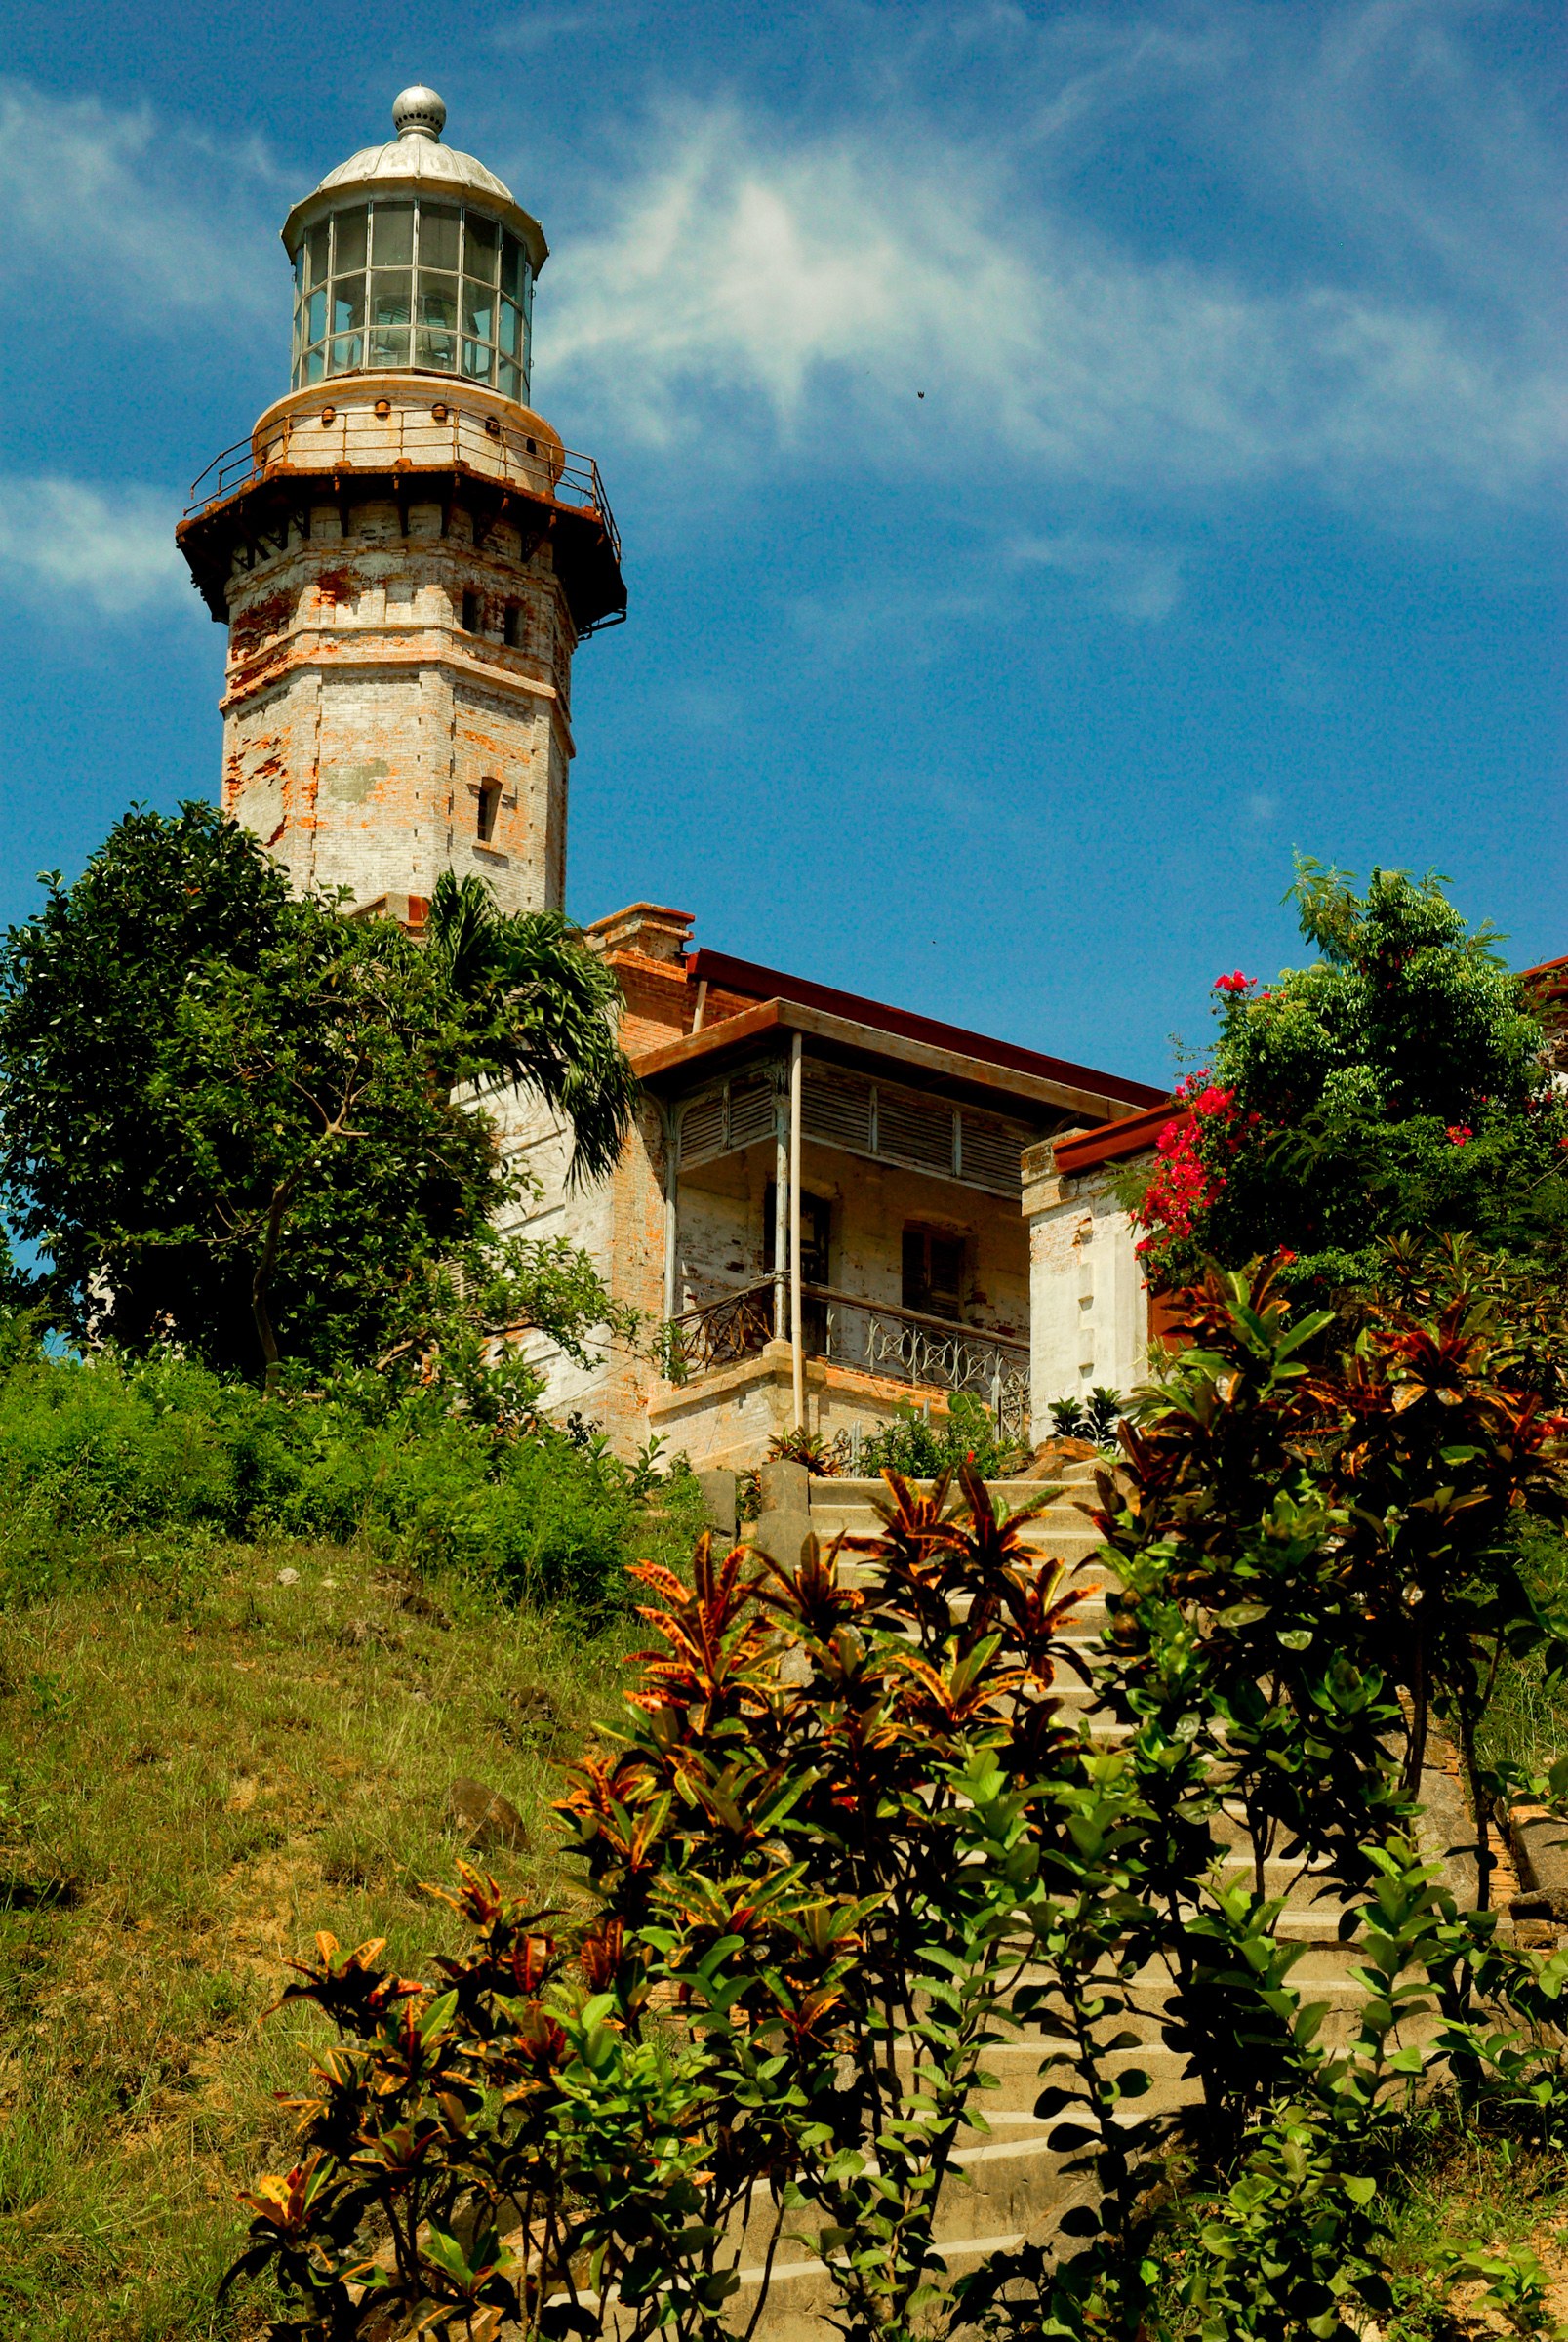 Najlepši svetionici sveta Cape_Bojeador_lighthouse,burgos,ilocos_norte